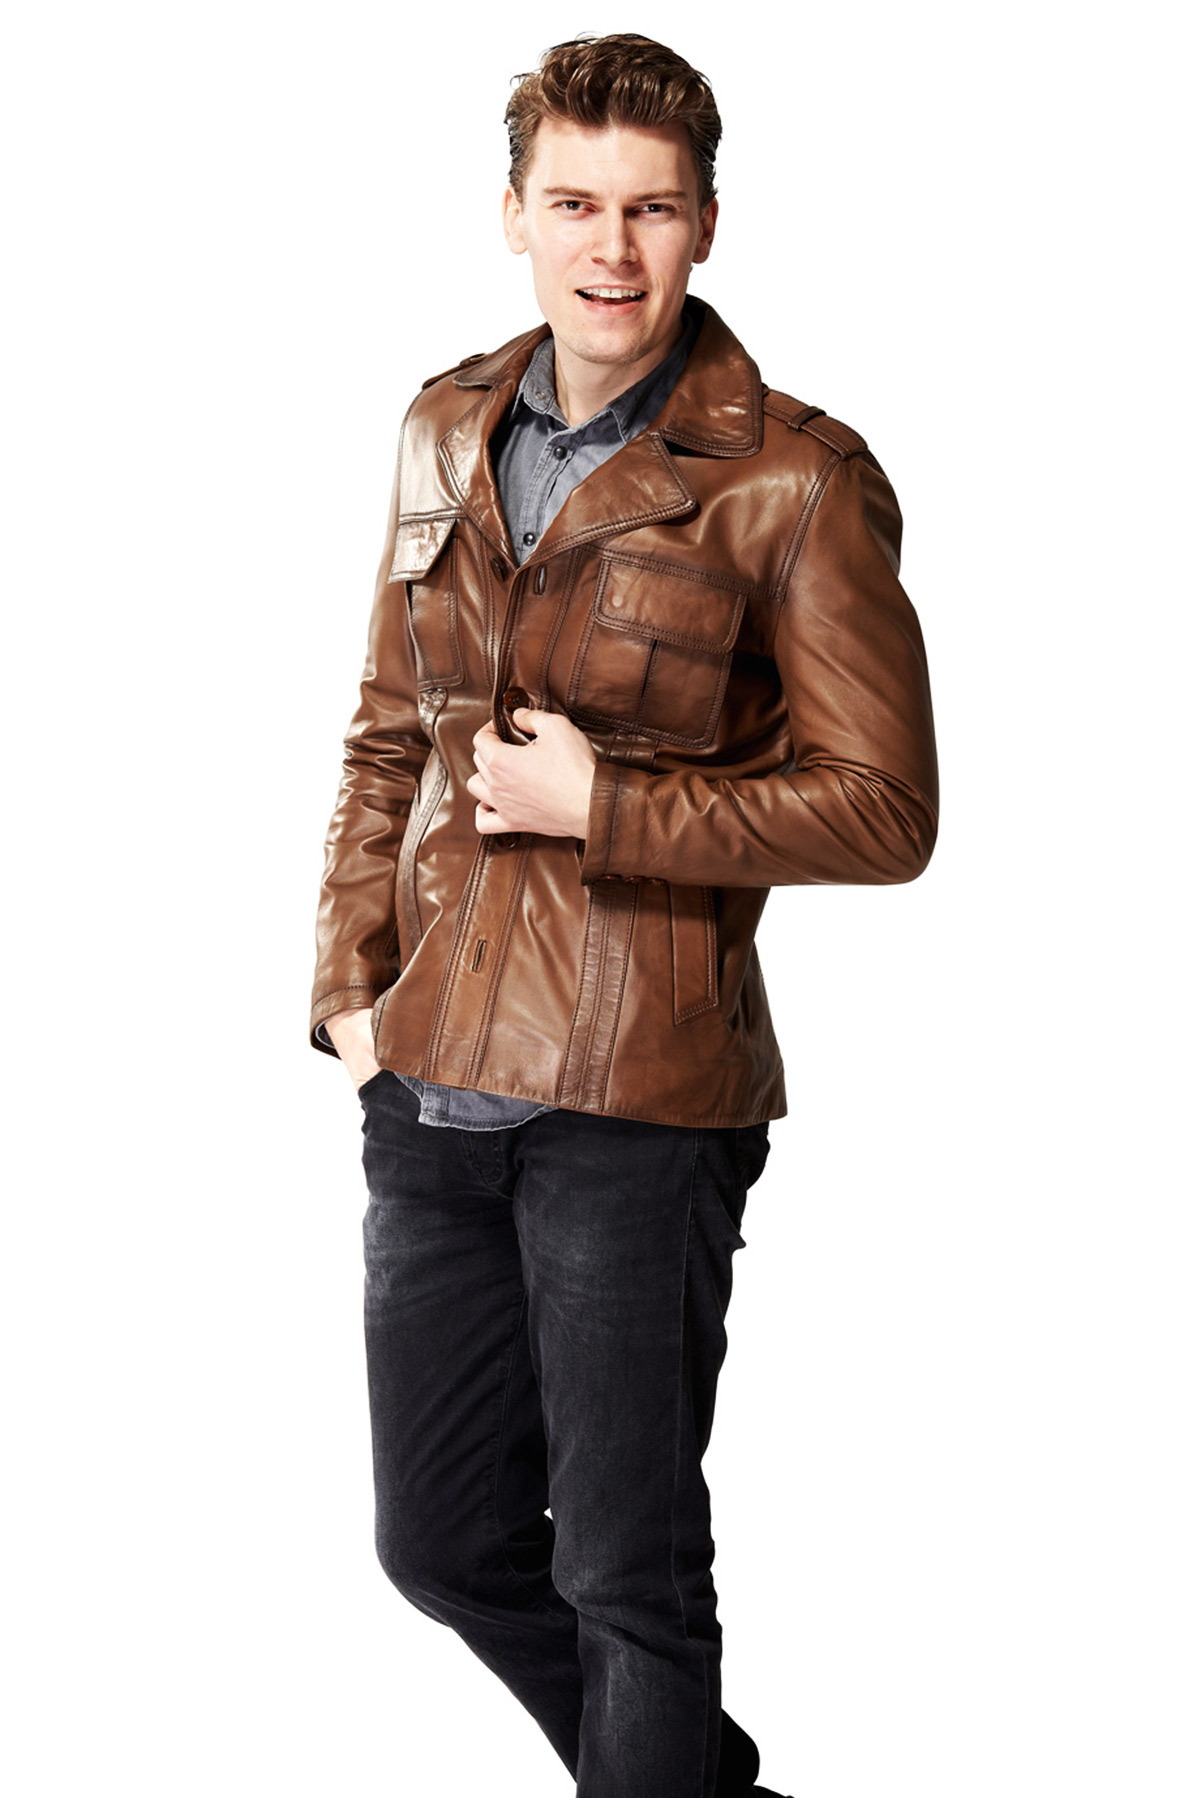 real leather jacket near me